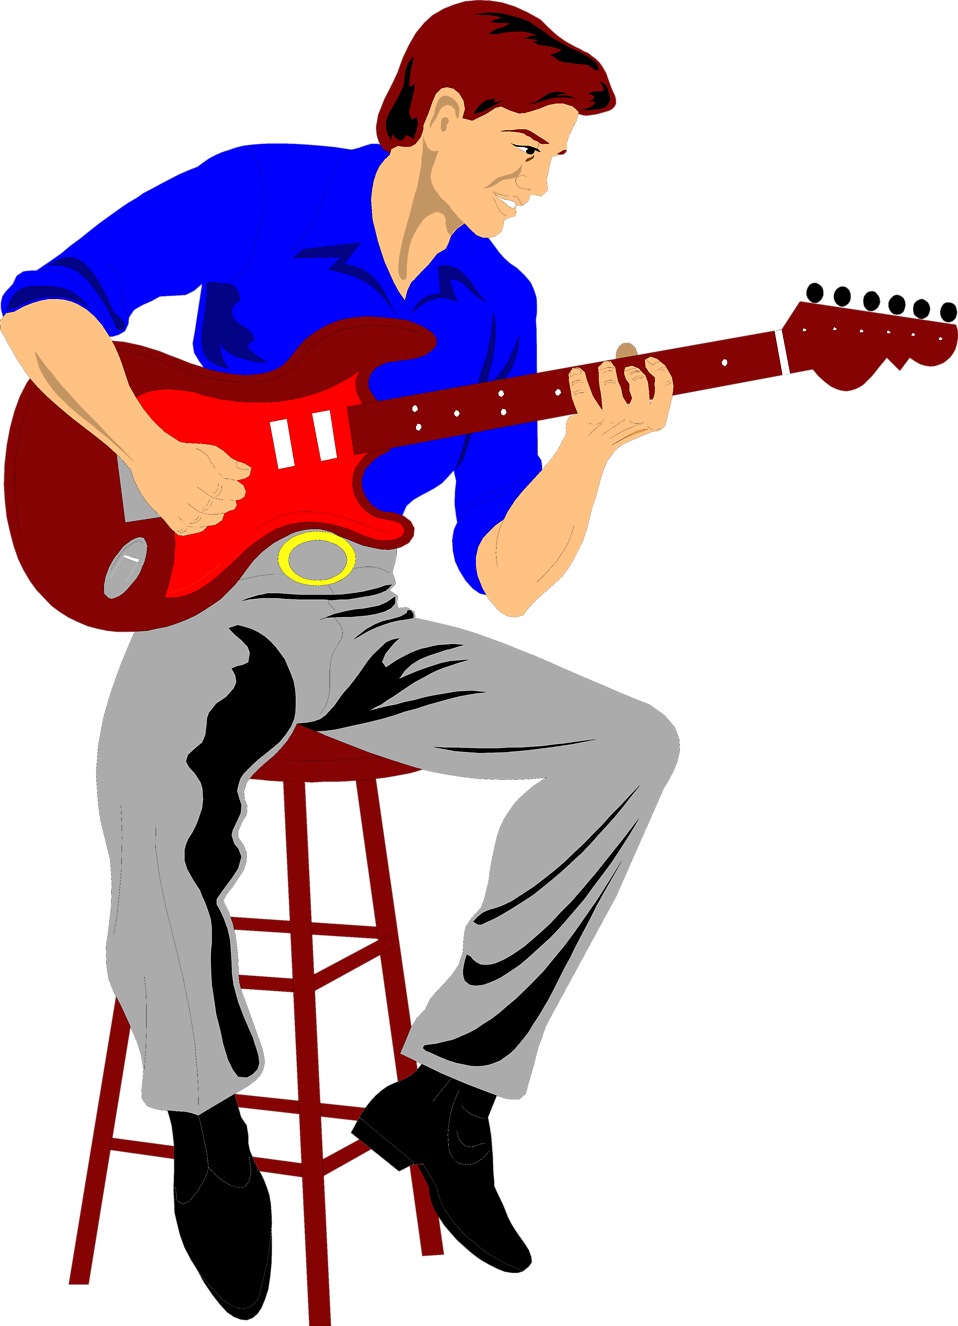 Players clipart electric guitar player. Guitarist free stock photo